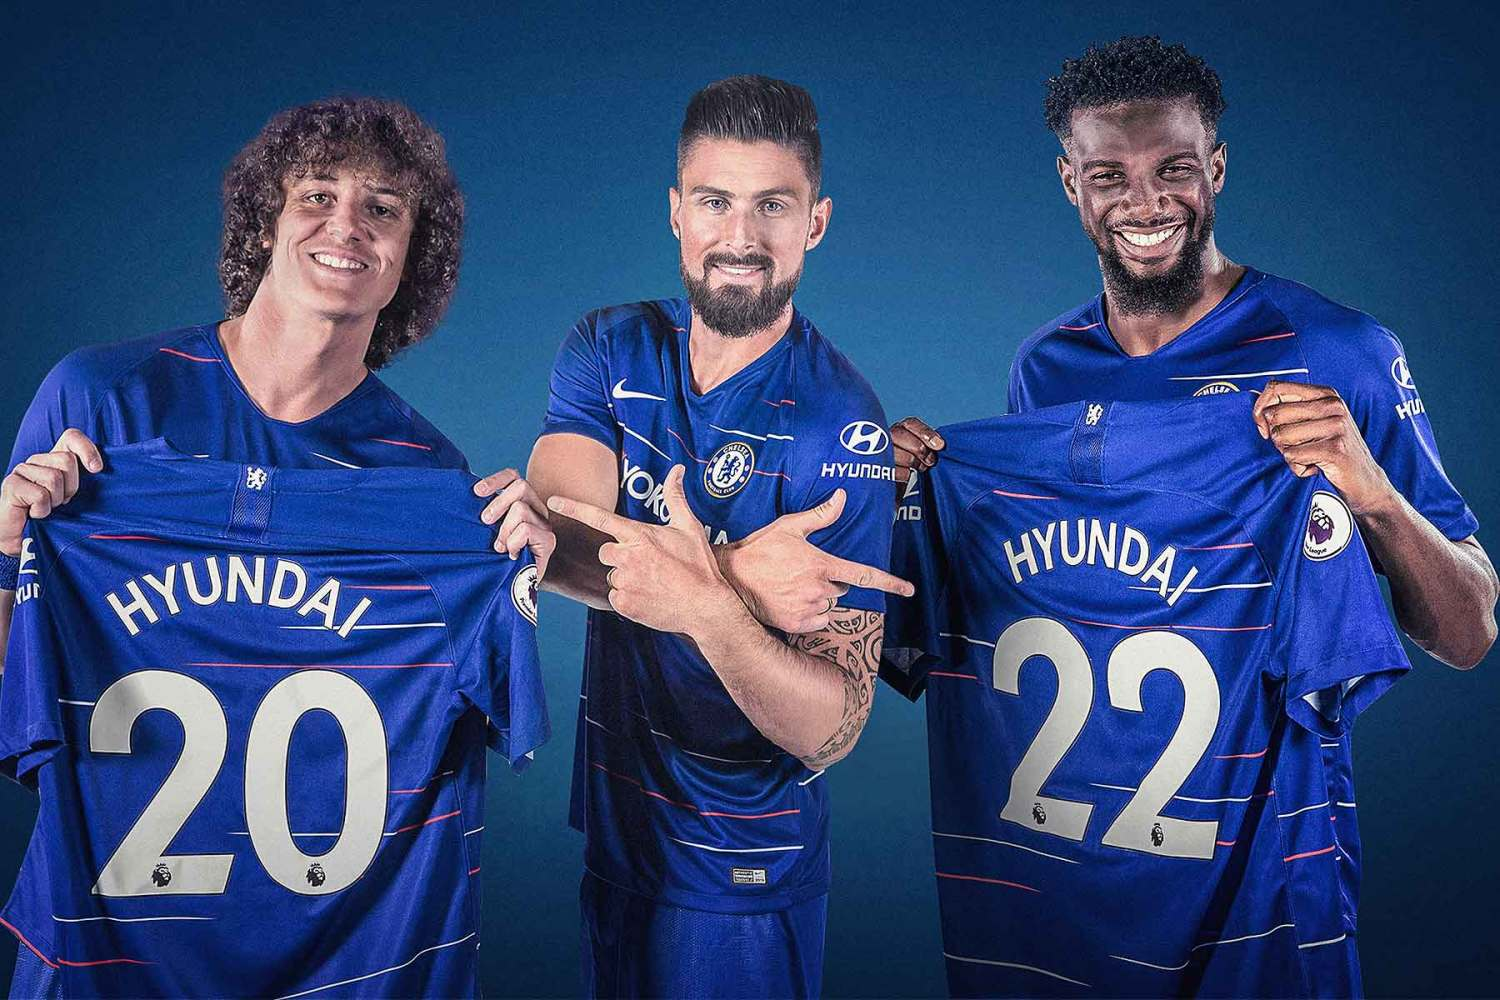 f7bd9745e55 Hyundai and Chelsea Hyundai has become the official global automotive  partner of Chelsea Football Club ...